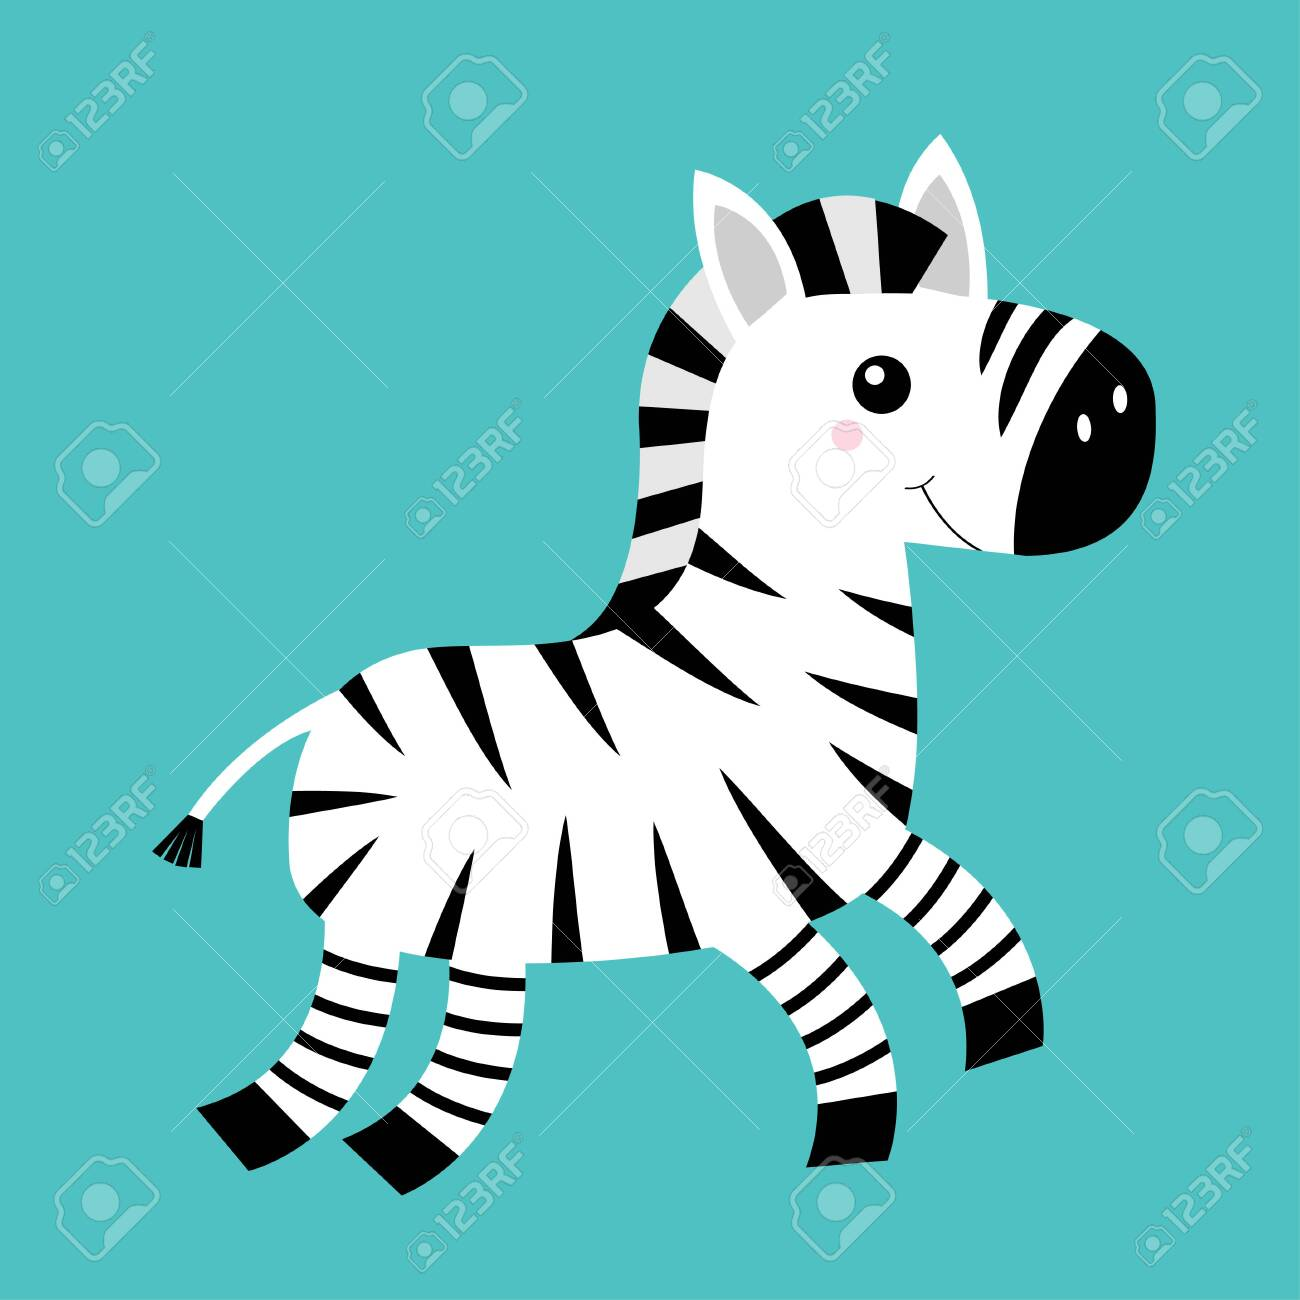 Zebra Icon Black Striped Horse Jumping Notebook Cover T Shirt Royalty Free Cliparts Vectors And Stock Illustration Image 144529558